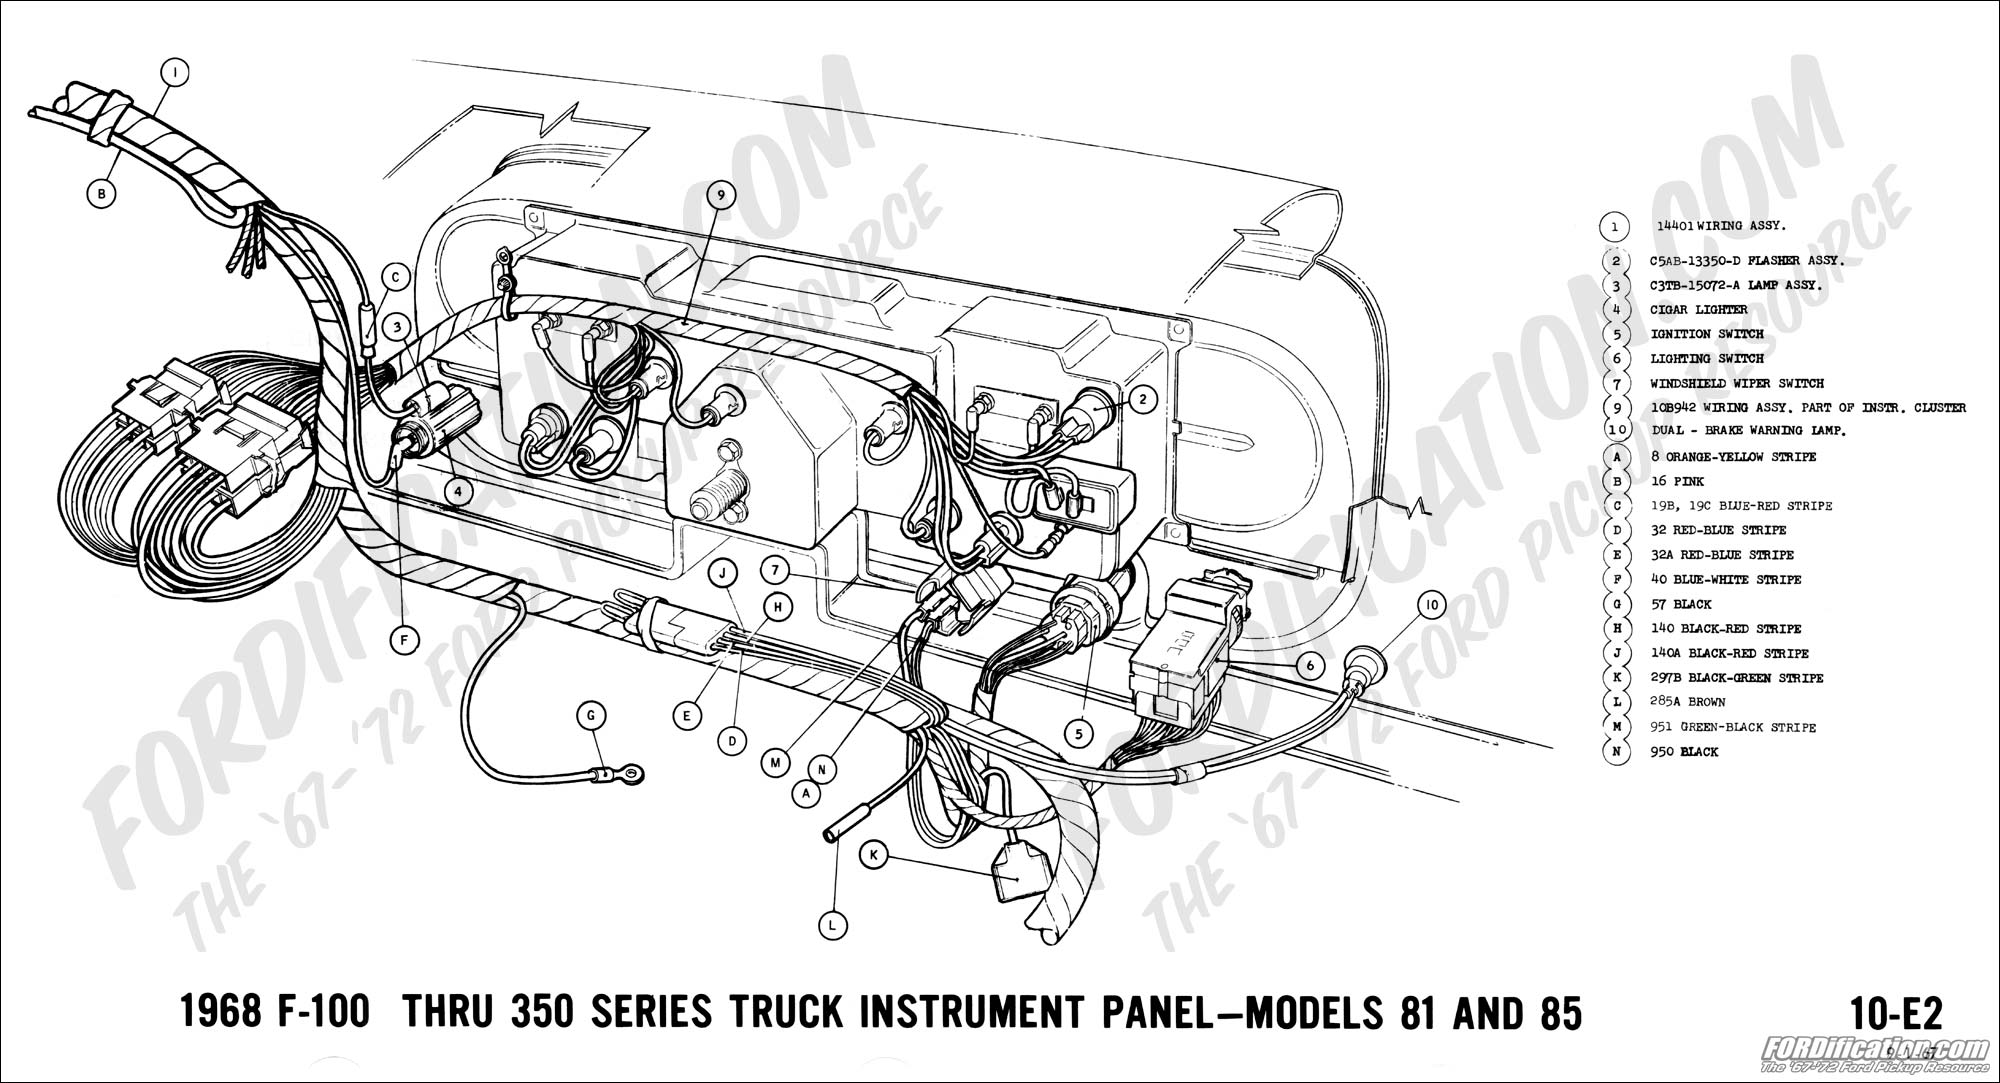 1996 Chevy Truck Fuse Box Diagram Circuit Wiring And Hub 1968 Impala Ford Technical Drawings Schematics Section H 1985 2007